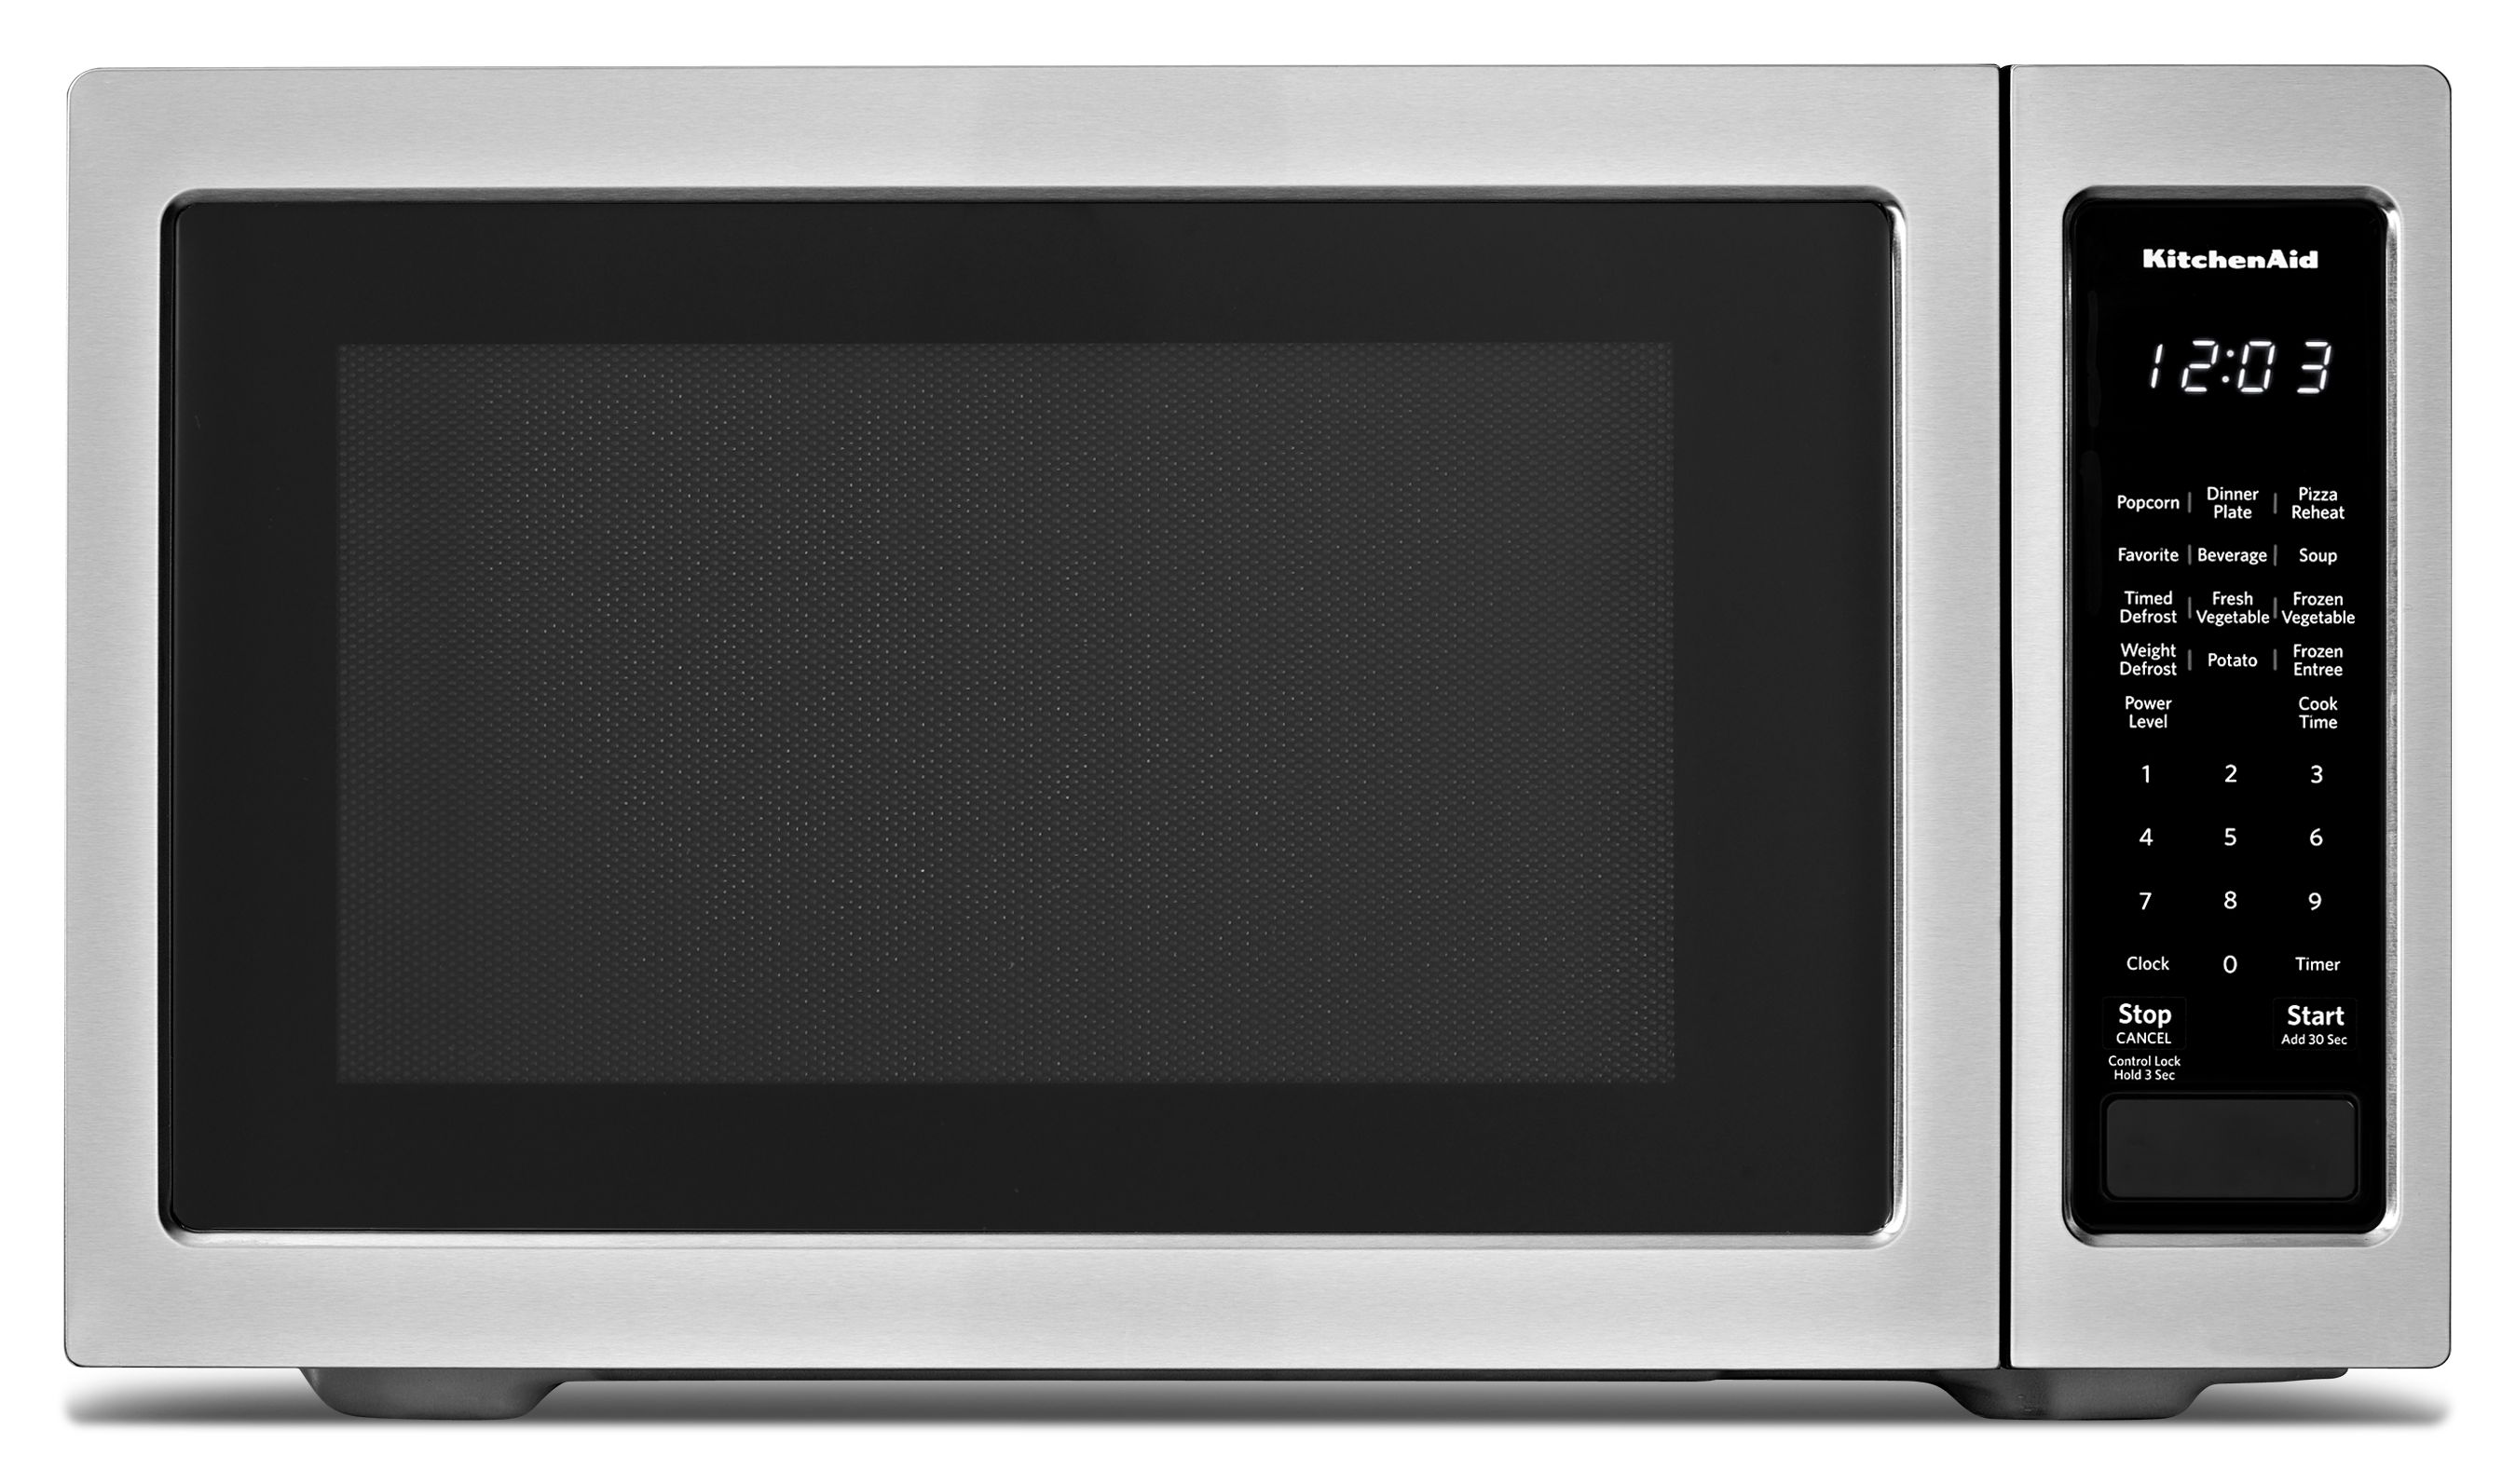 Kitchenaid Countertop Microwave Oven Stainless Steel Kmcs1016gss